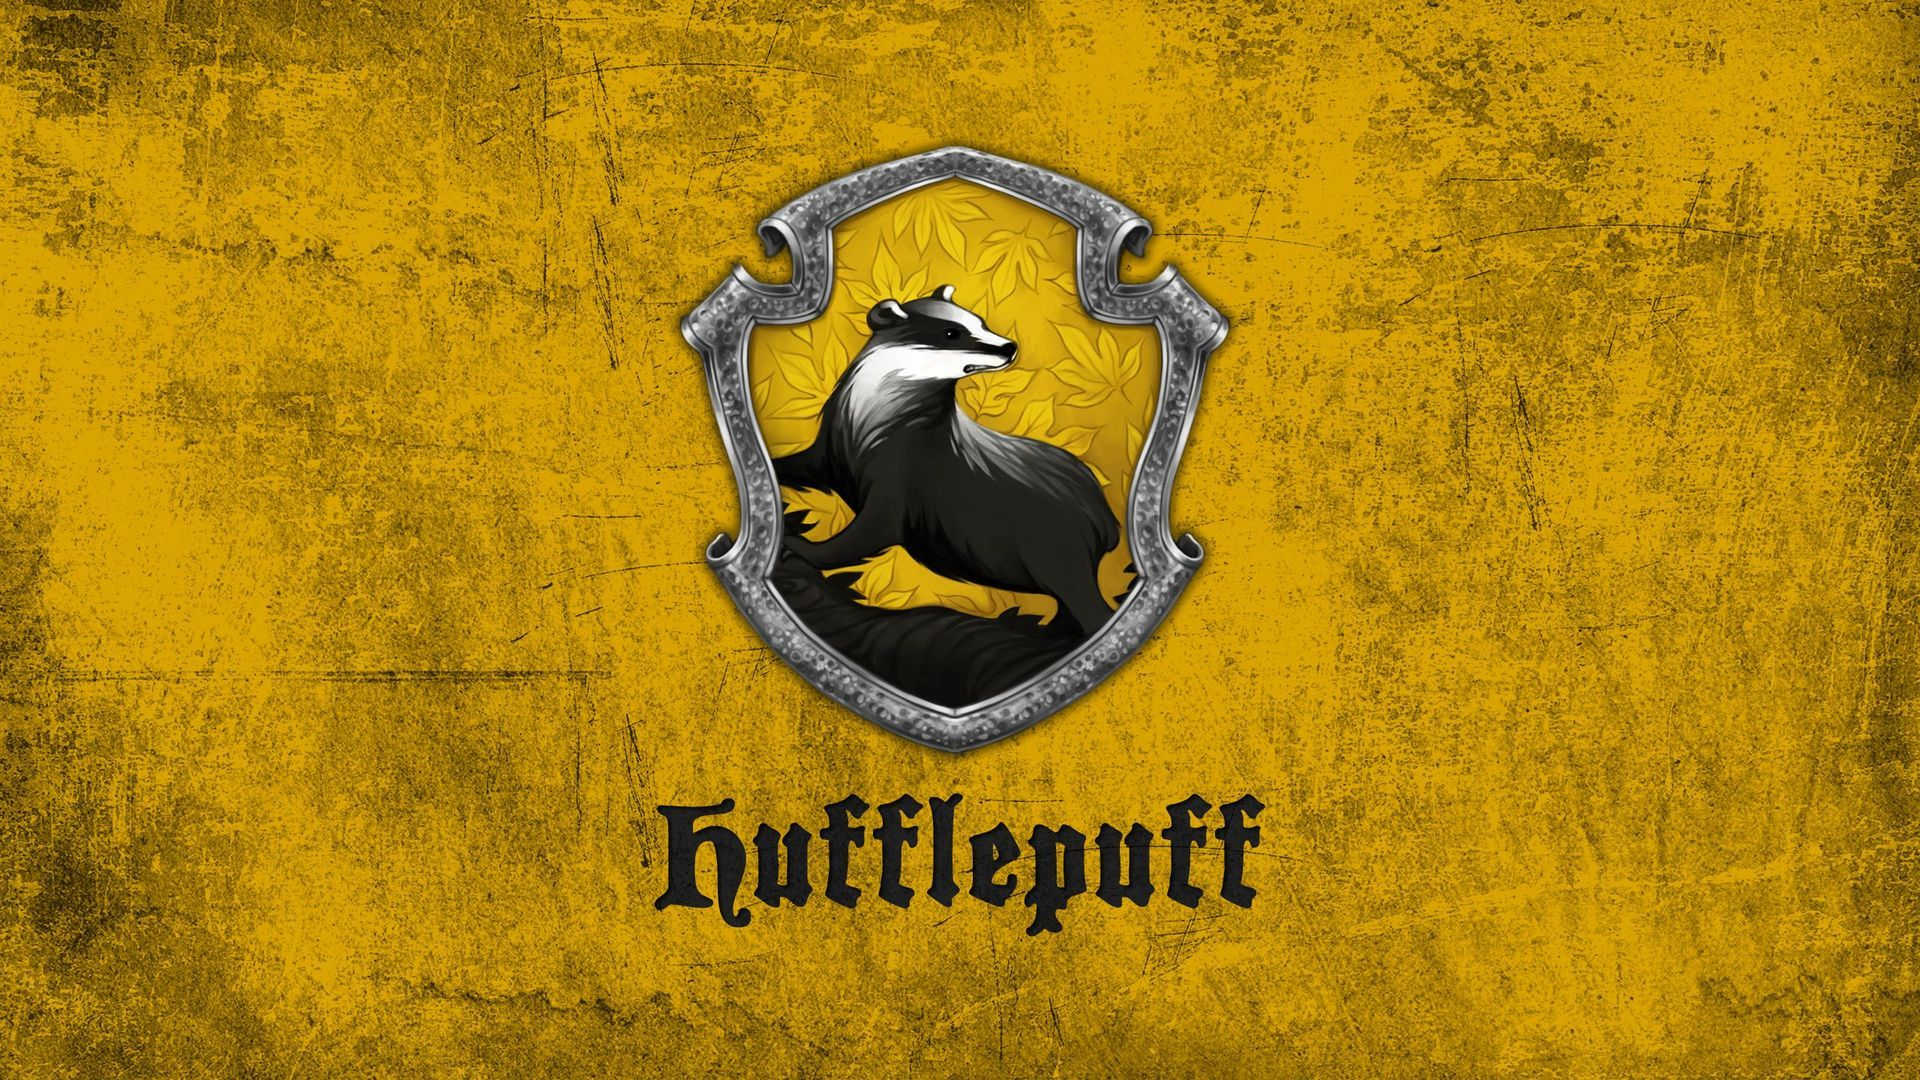 Image Result For Hufflepuff Harry Potter Background Wallpaper Wallpapers Downloads Map